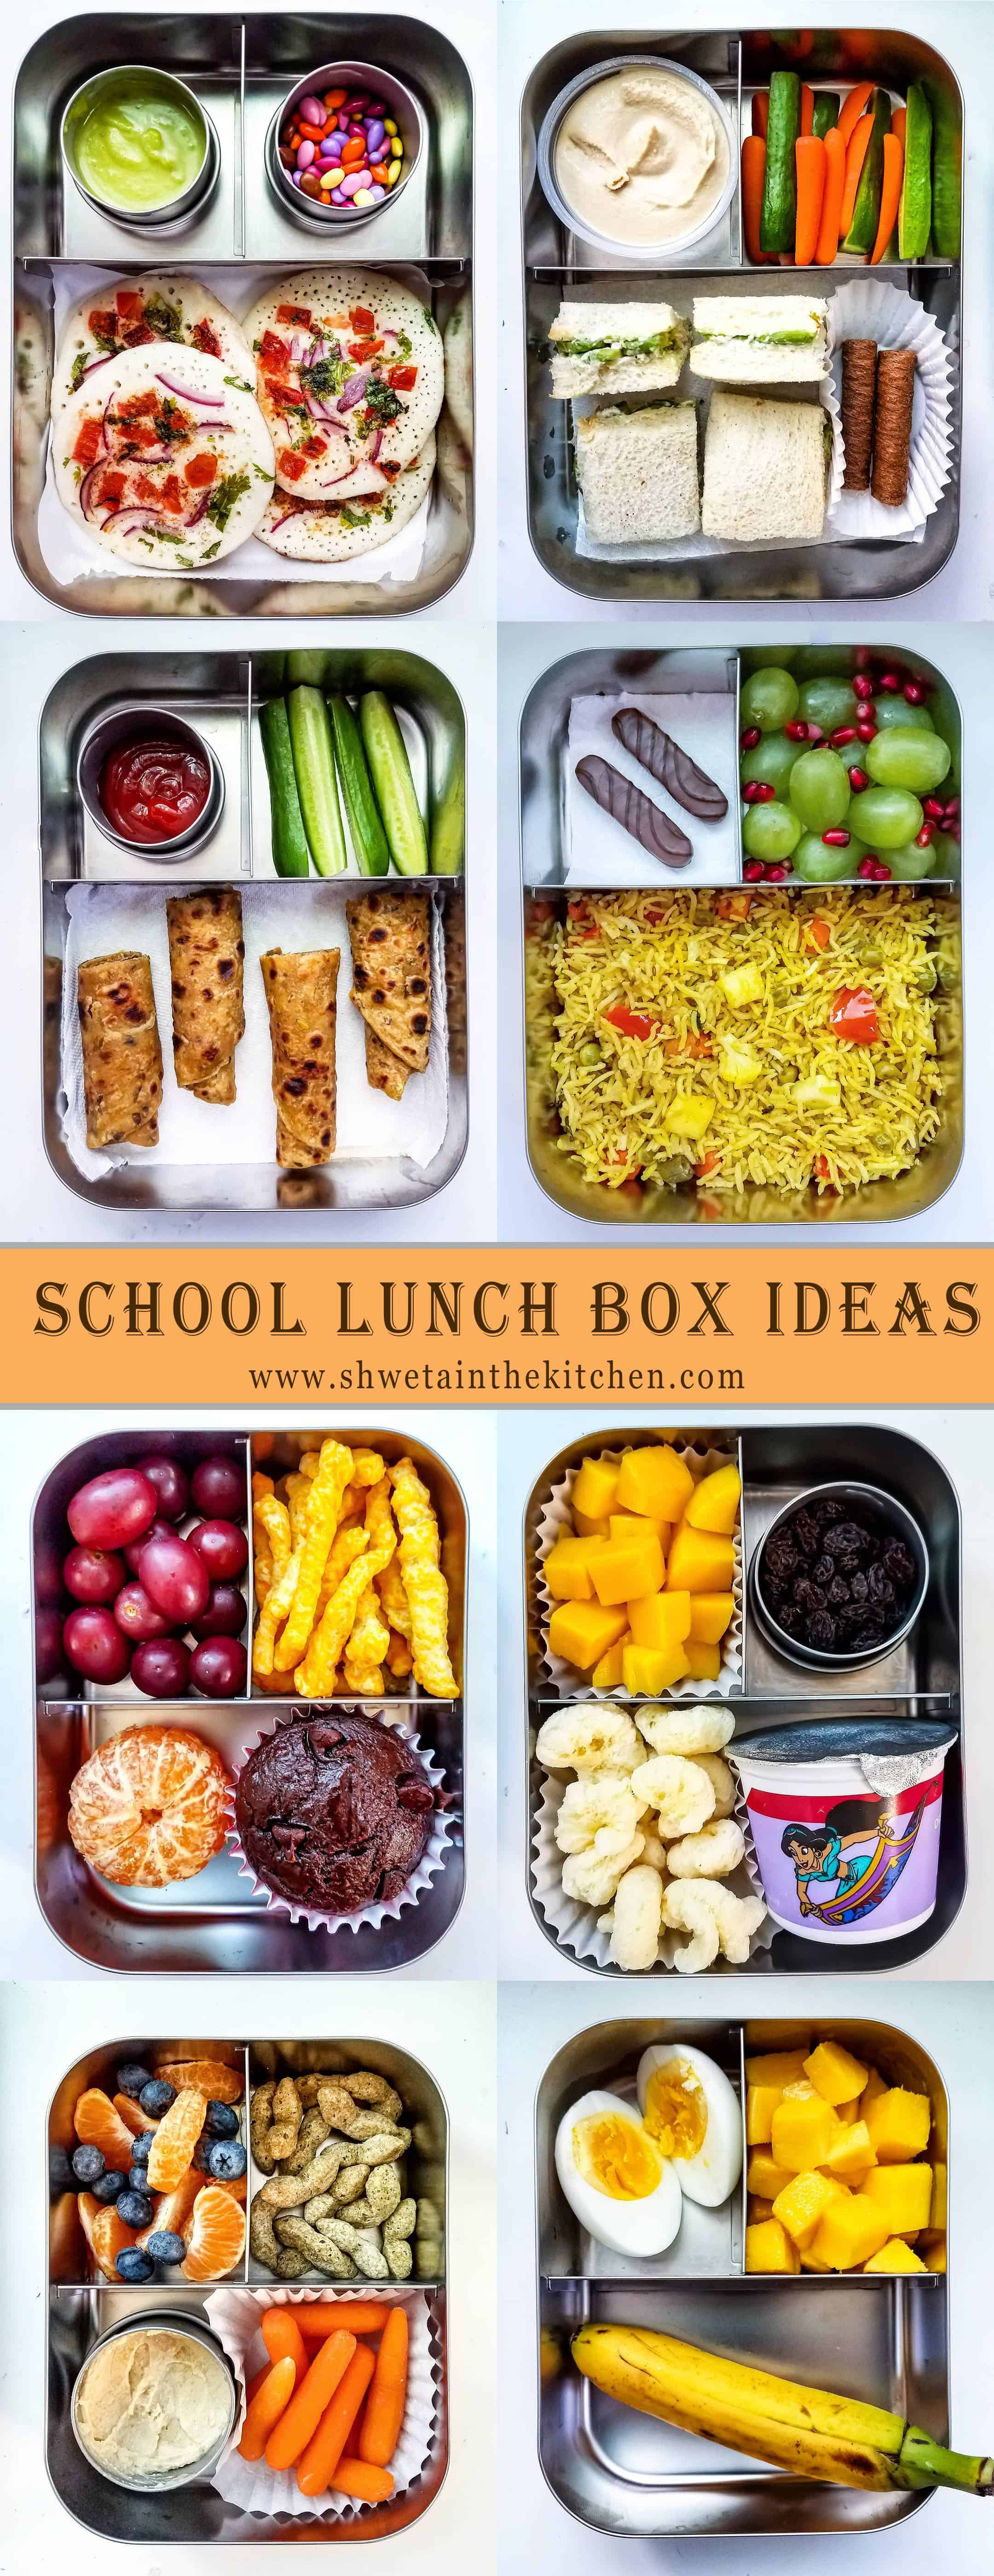 Collage of School Lunch ideas for kids